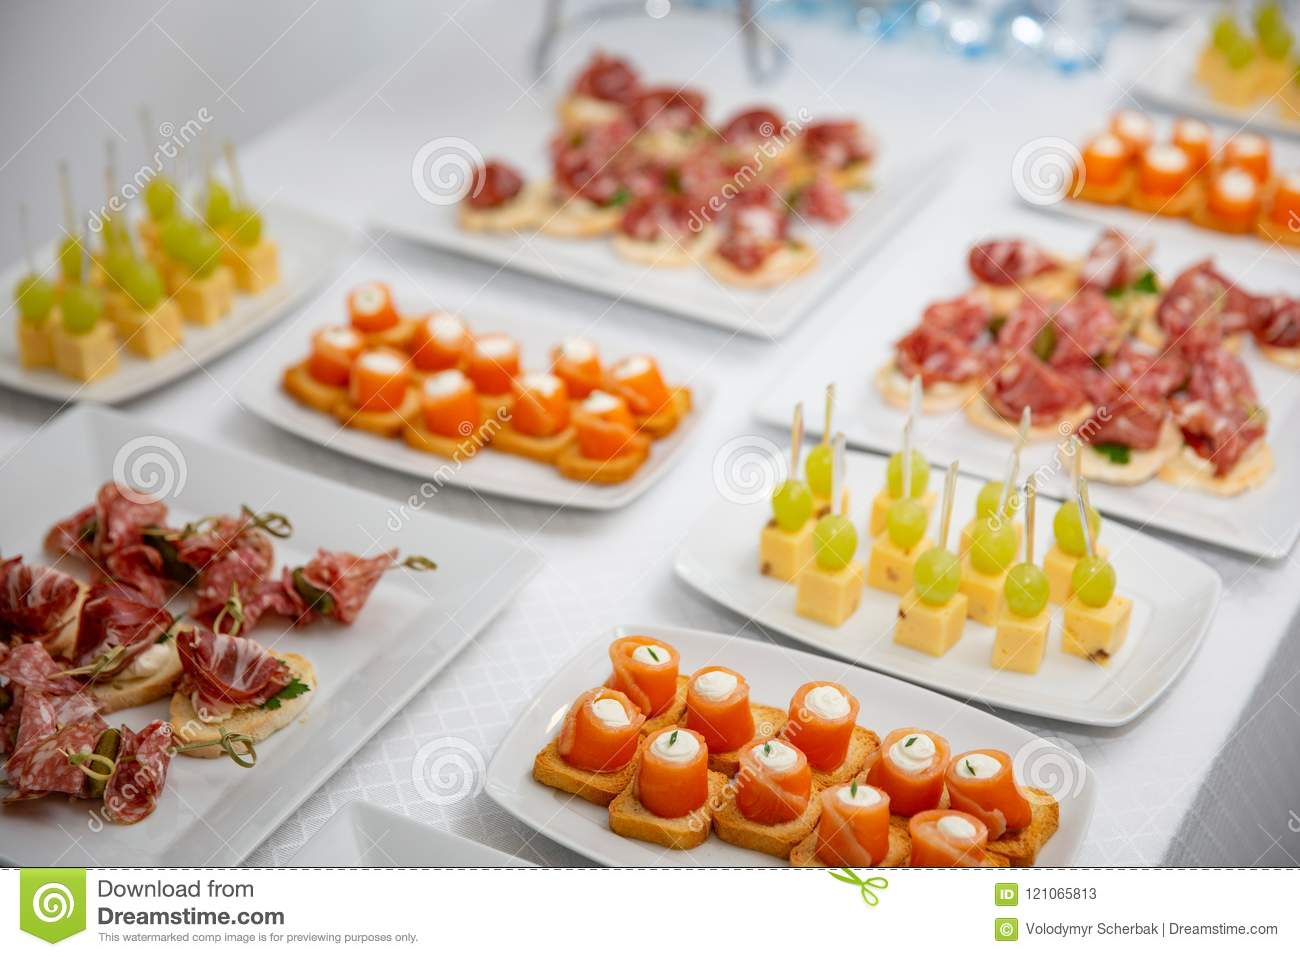 Buffet at the reception. Assortment of canapes. Banquet service. catering food, snacks with salmon